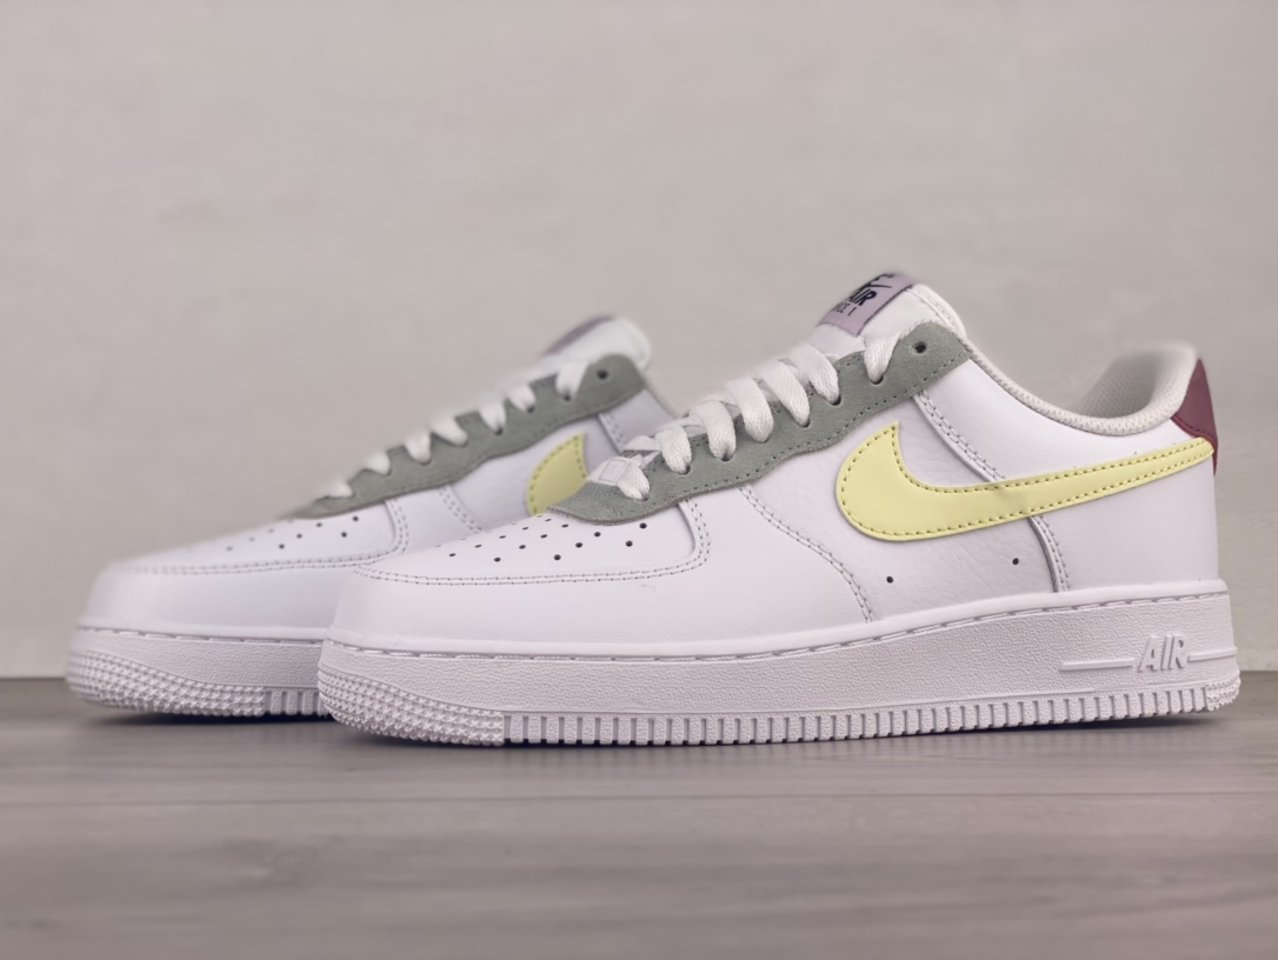 Cheap Nike Air Force 1 Low Muted Pastels White Pink DN4930-100 side